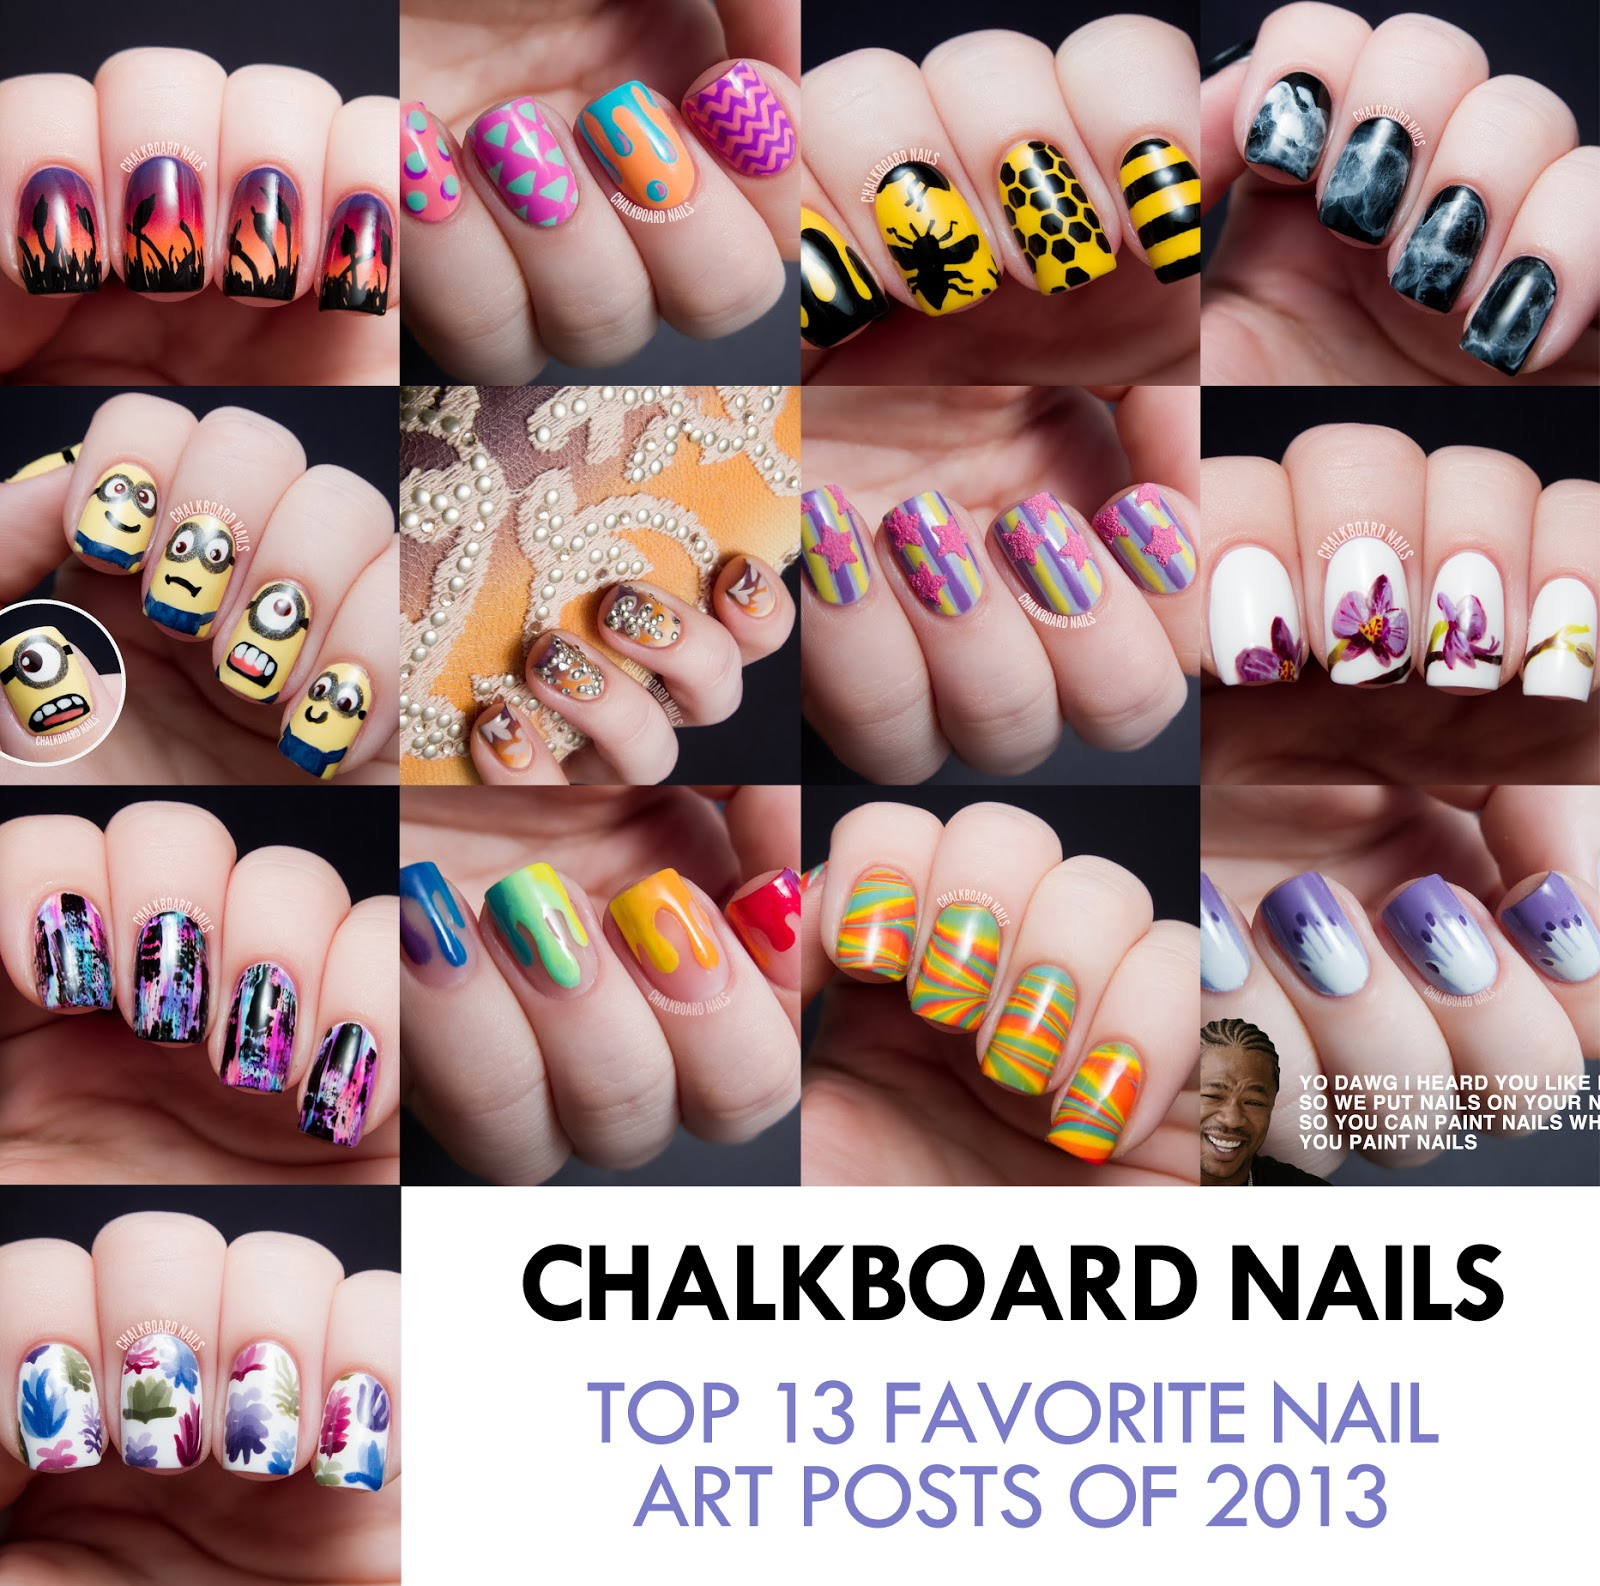 Top 13 favorite nail art posts of 2013 chalkboard nails nail top 13 favorite nail art posts of 2013 prinsesfo Image collections